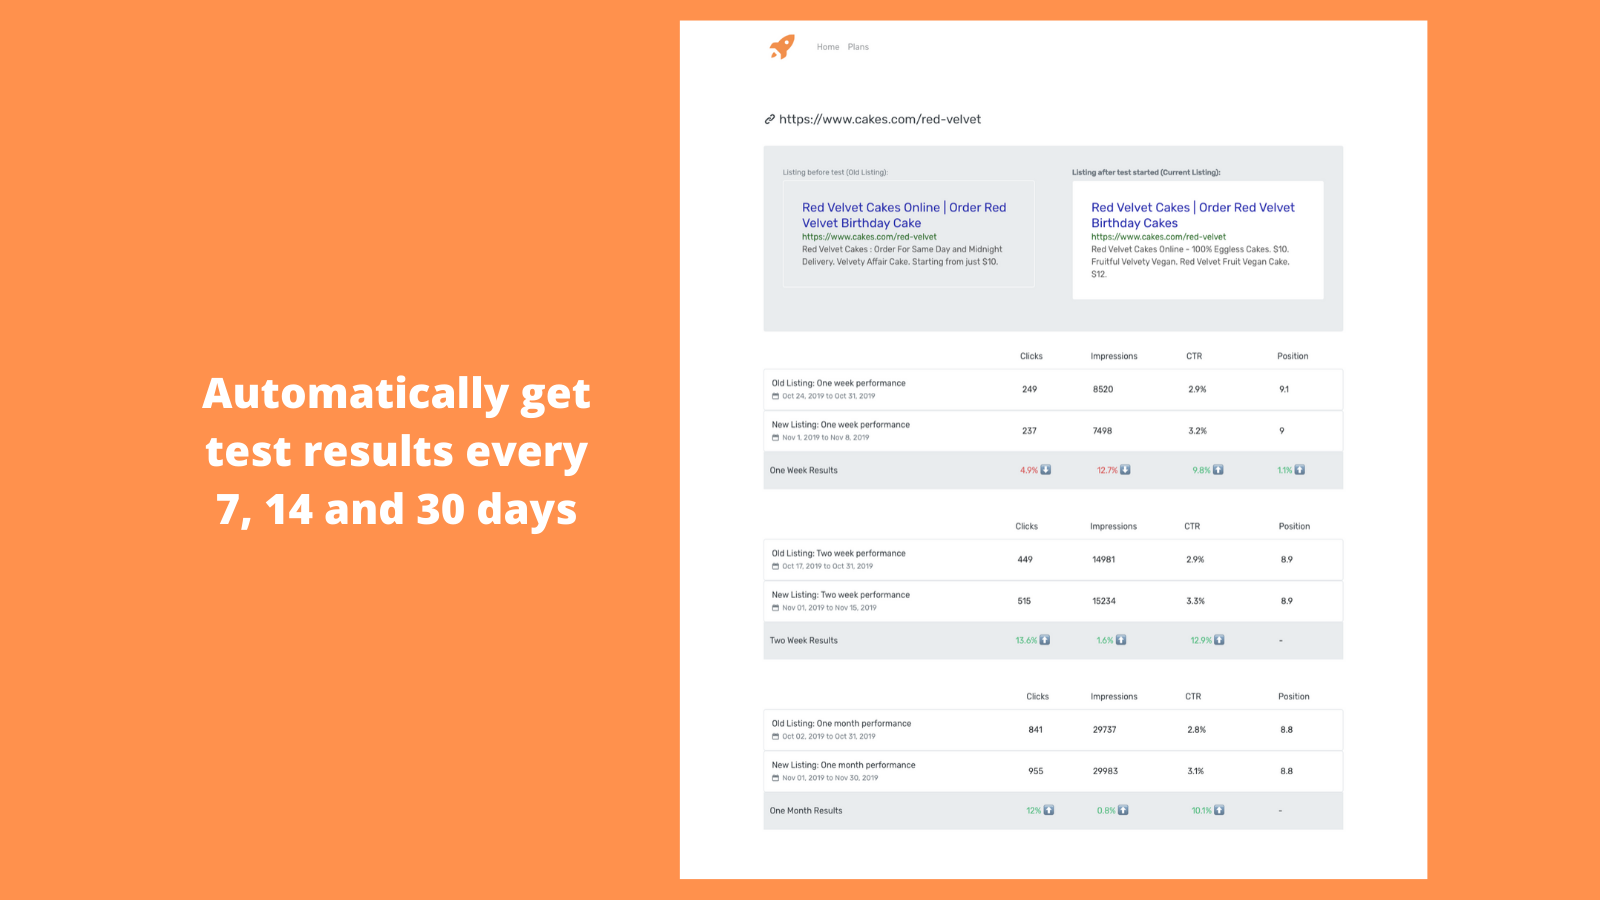 Automatically capture test results every 7, 14 and 30 days